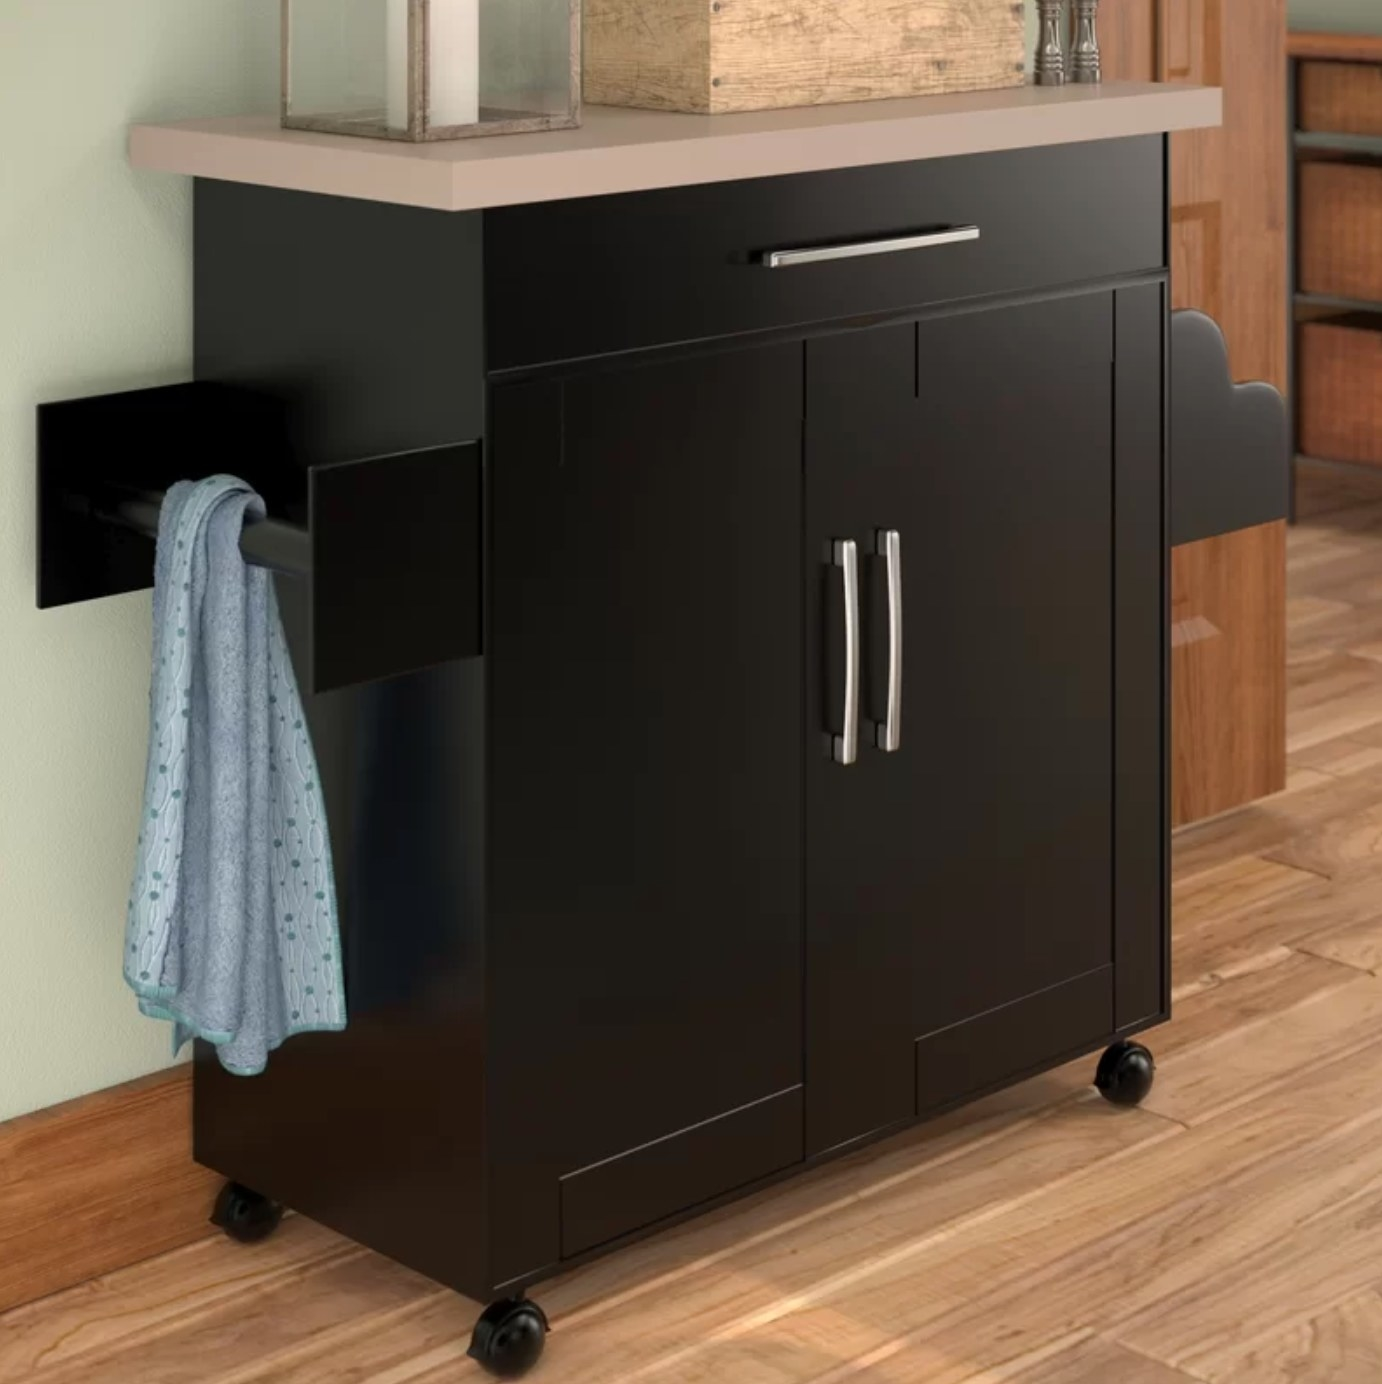 The kitchen cart in chocolate-gray